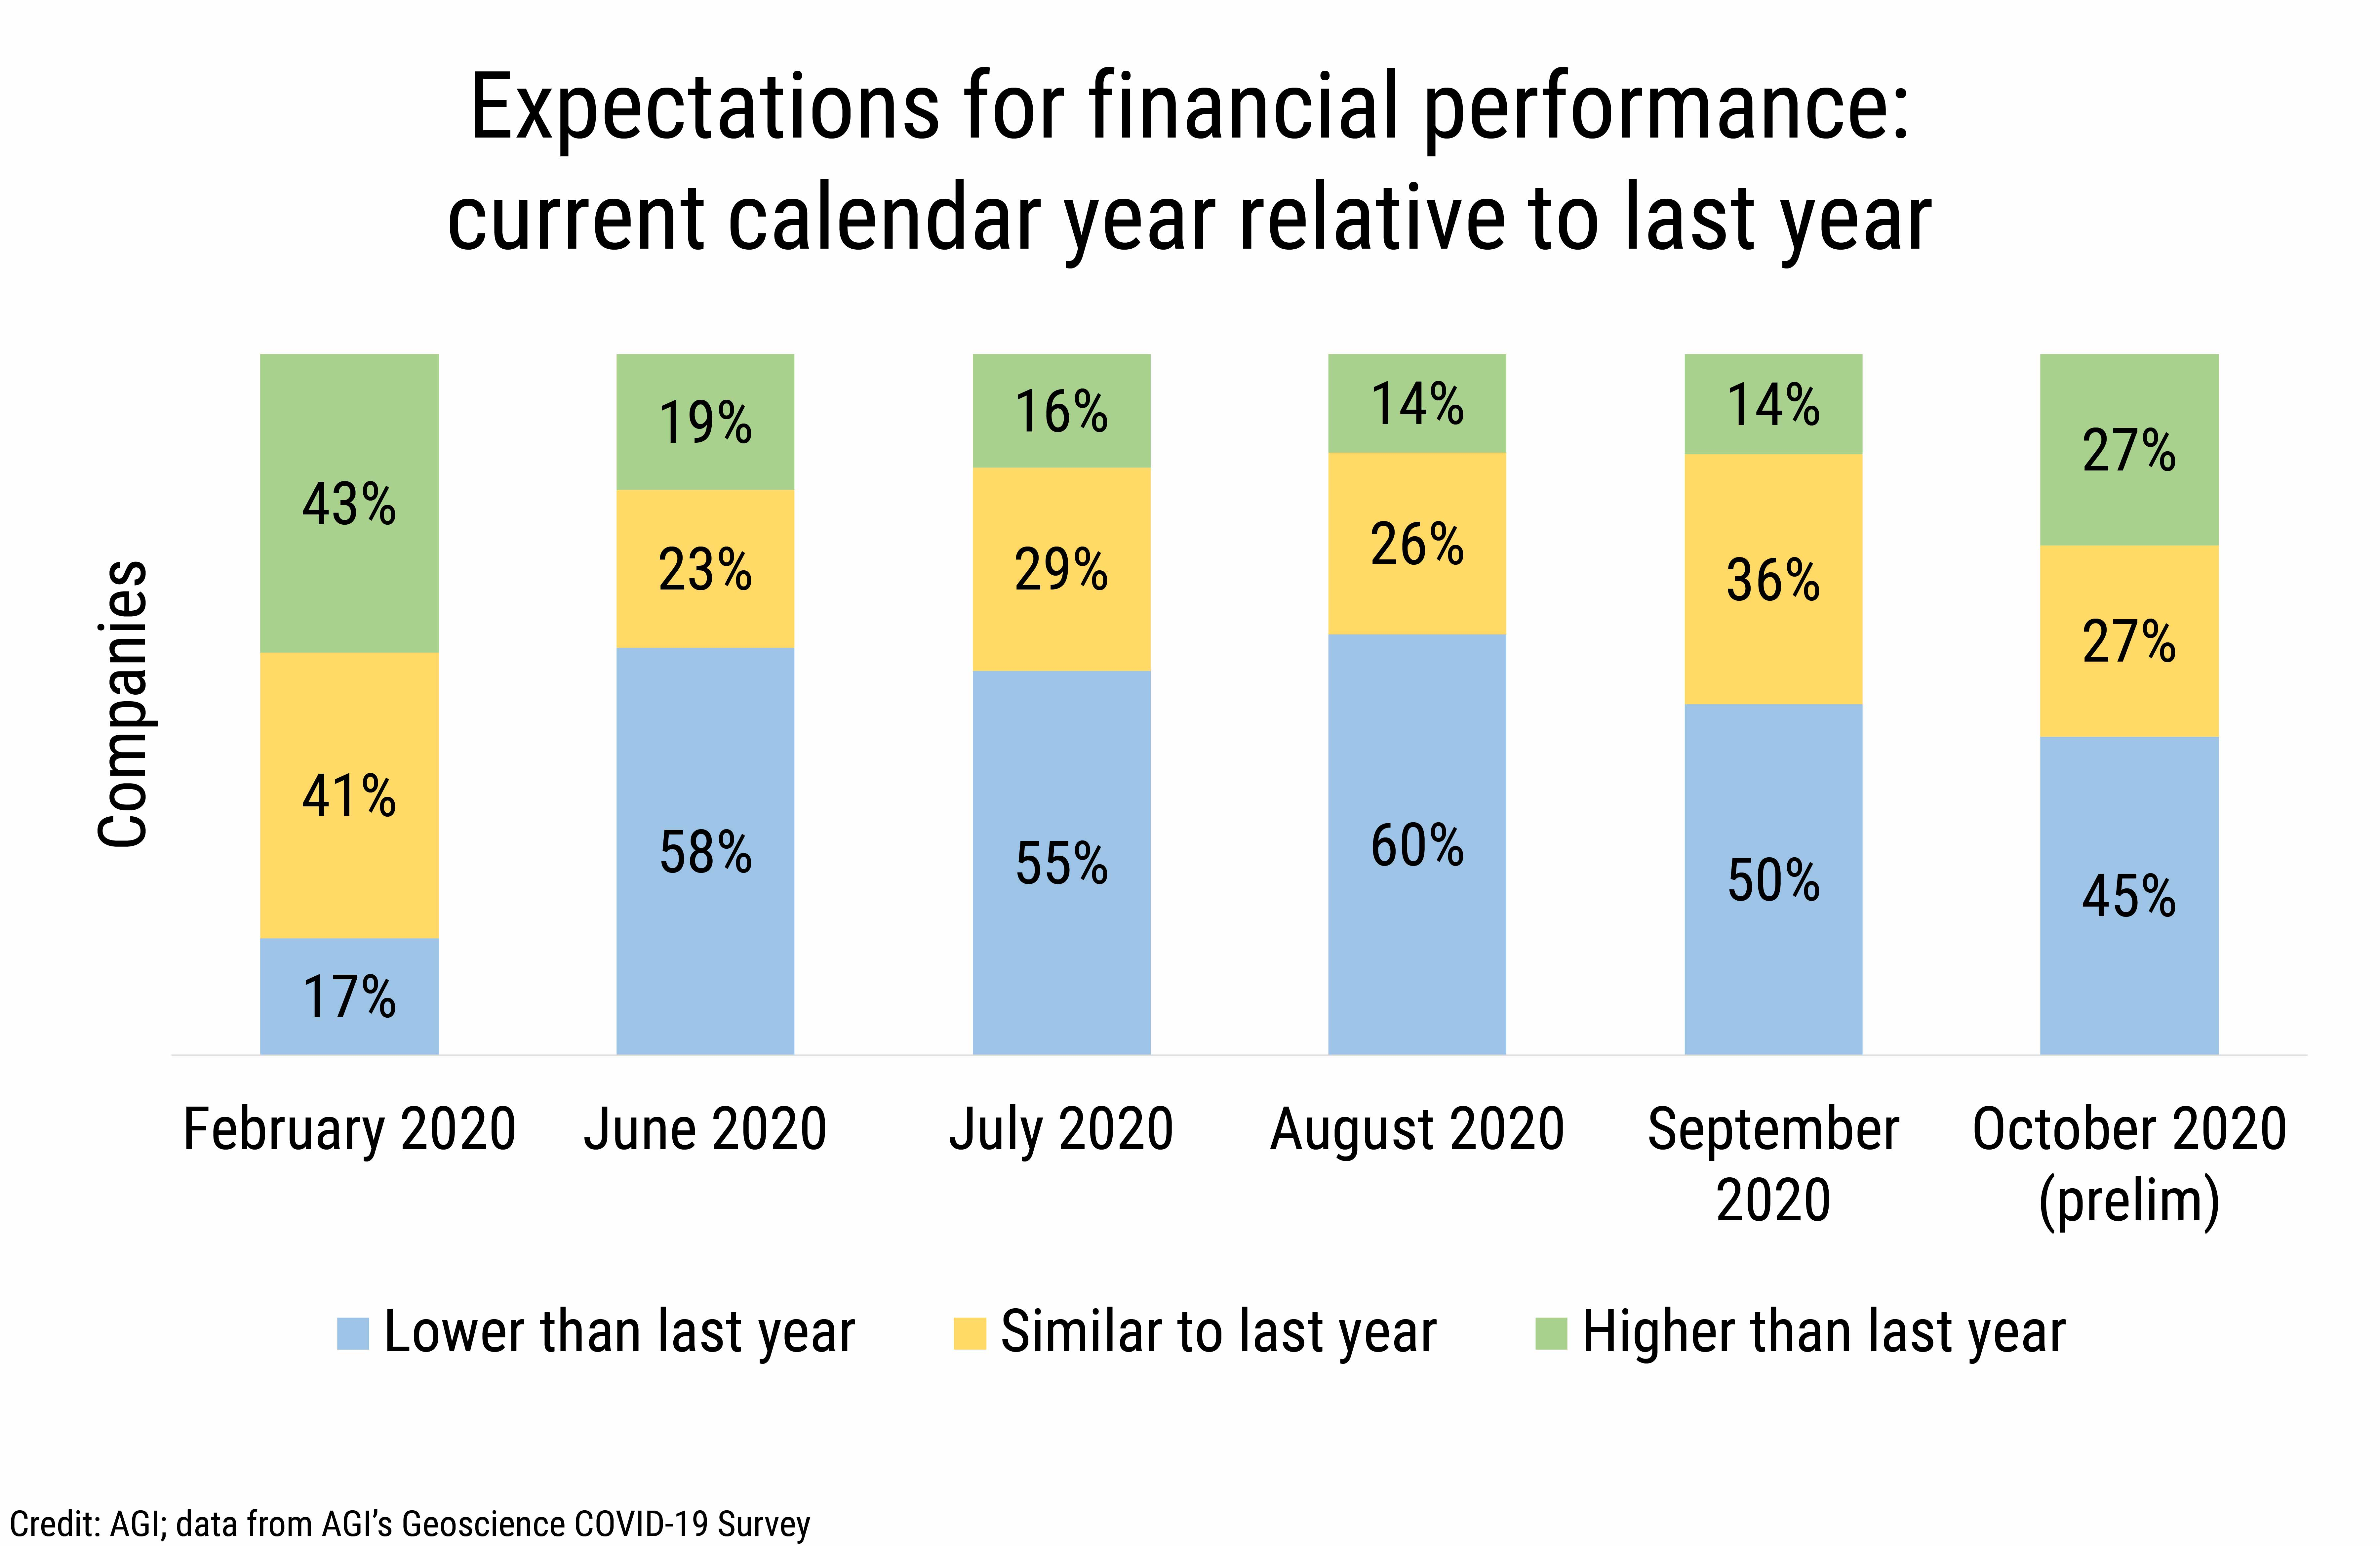 DB_2020-027 chart 01:  Expectations for financial performance: current calendar year relative to last year (Credit: AGI; data from AGI's Geoscience COVID-19 Survey)